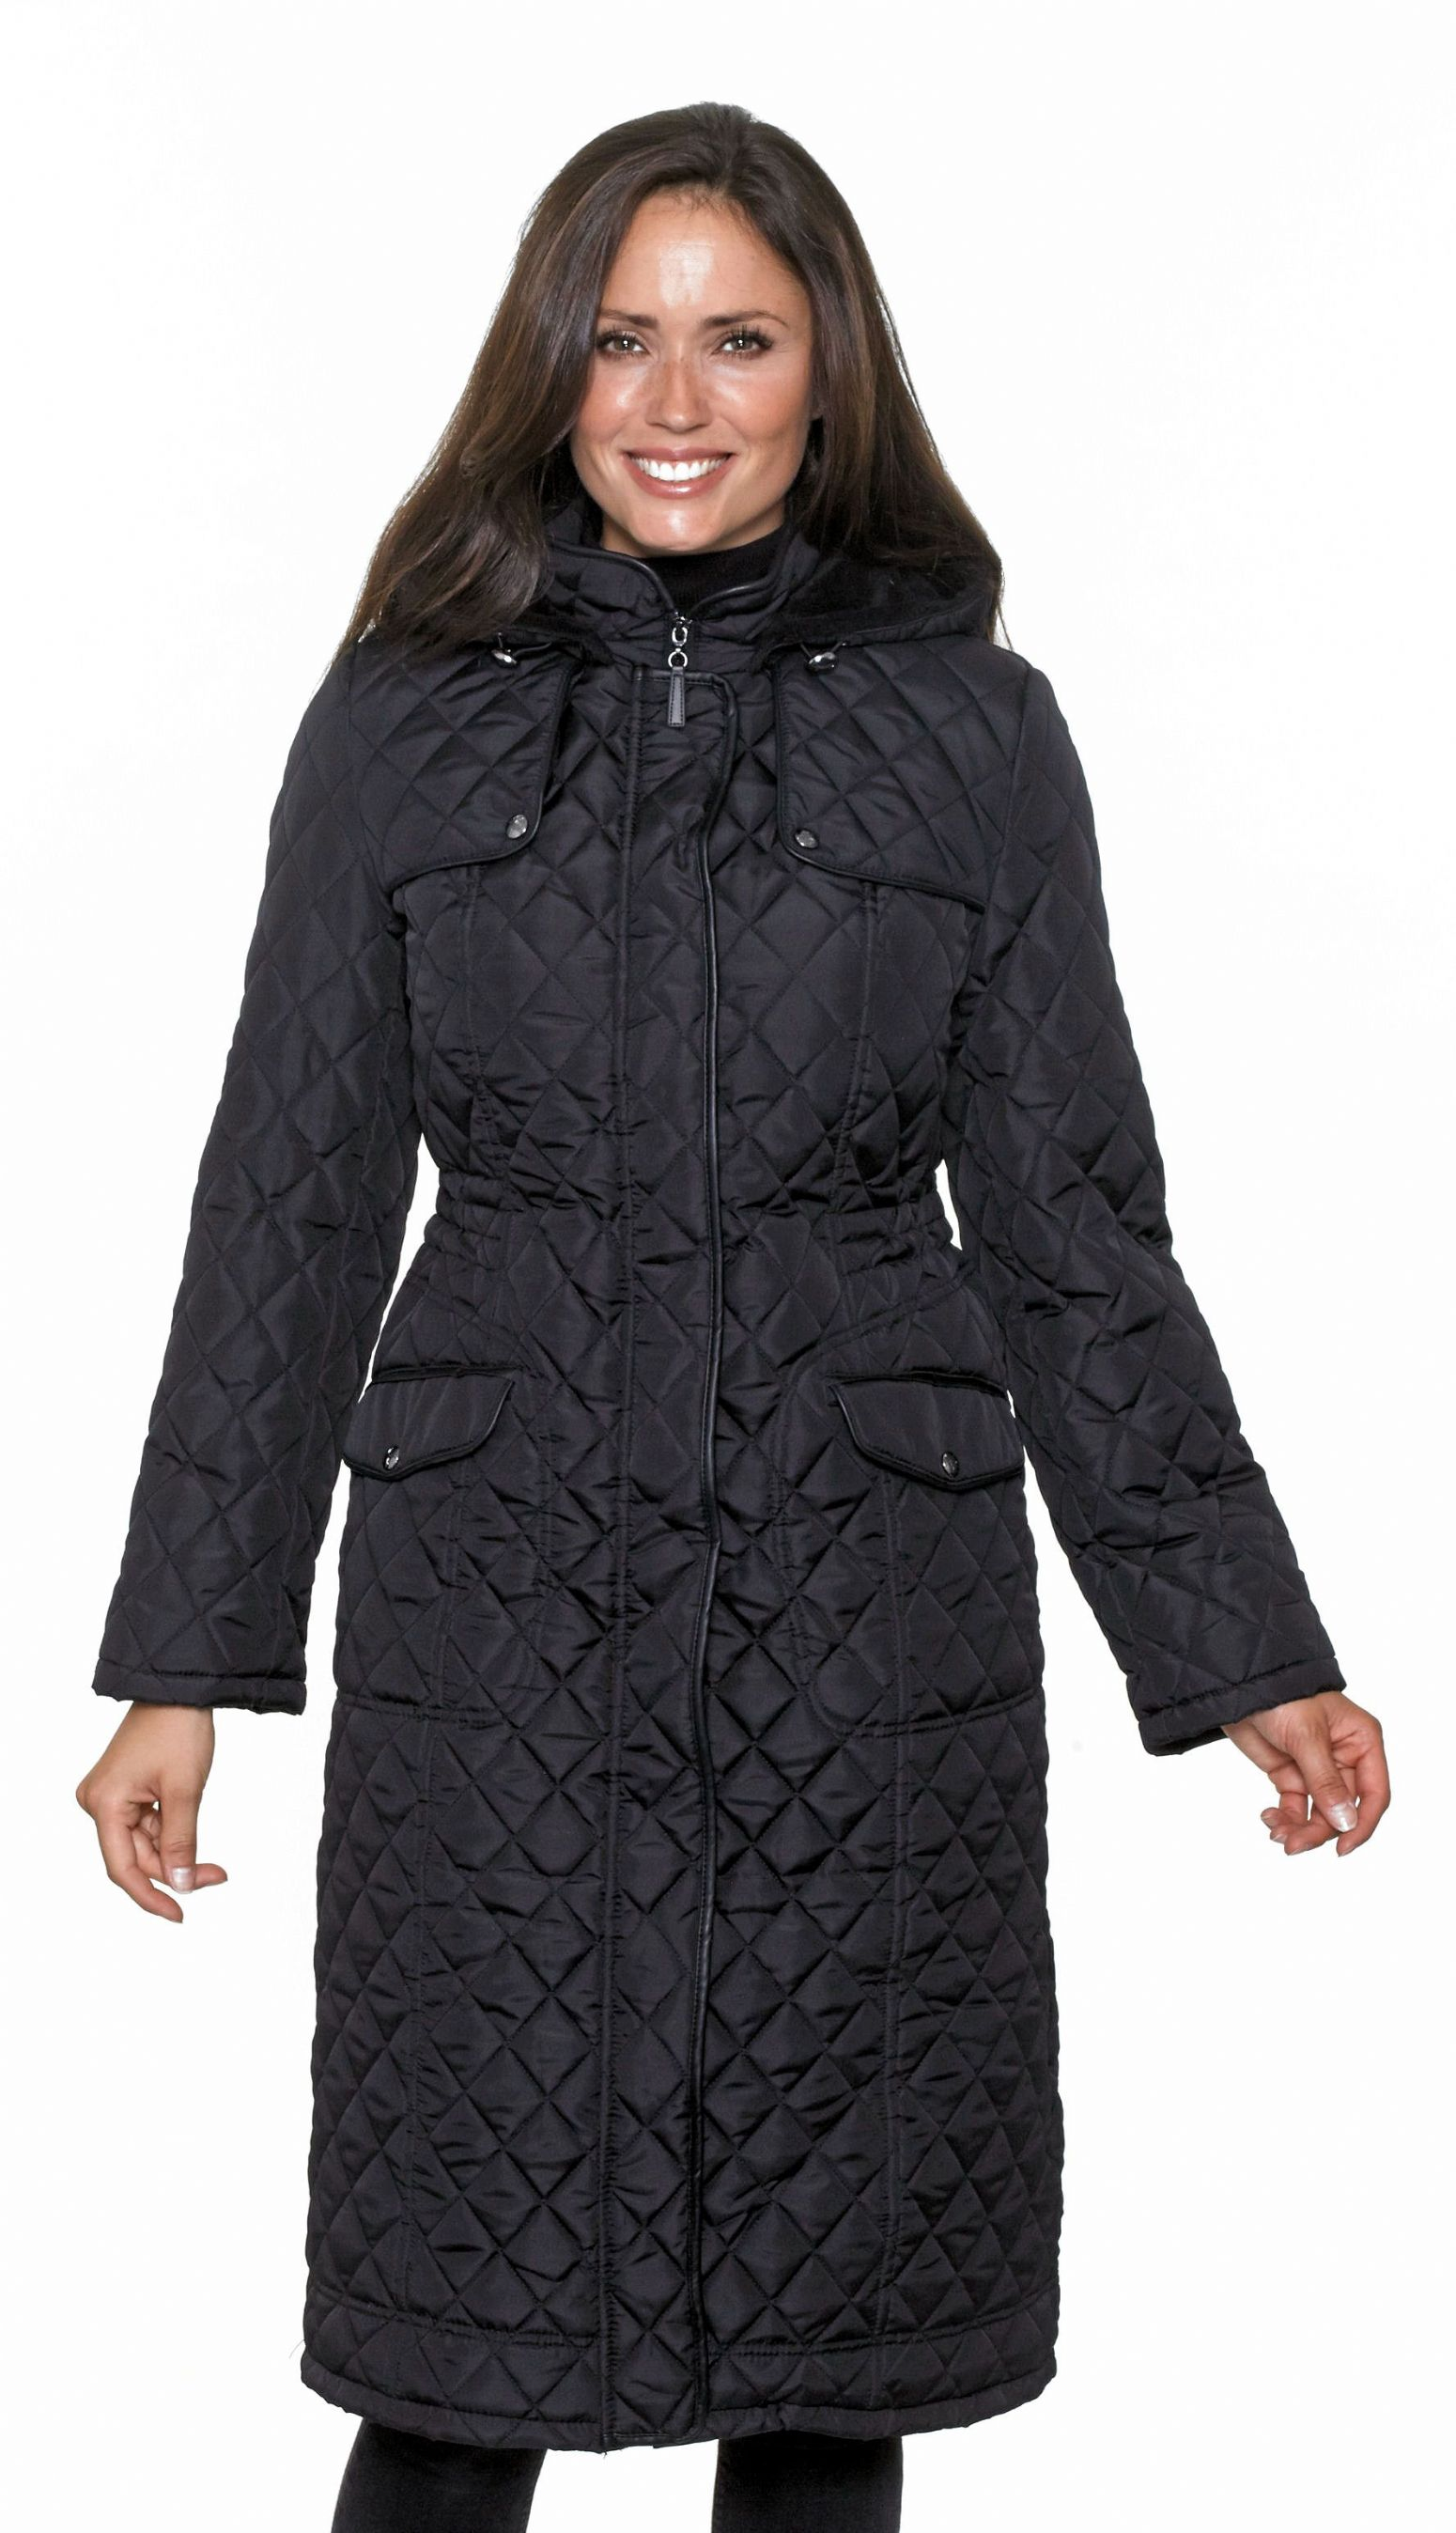 Free shipping and returns on quilted jackets for women at softhome24.ml Shop moto jackets, goose down jackets and more. Check out our entire collection. Skip navigation. Free shipping. Free returns. All the time. See details. Designer. Cropped Short Mid-Length Long. Show Size.